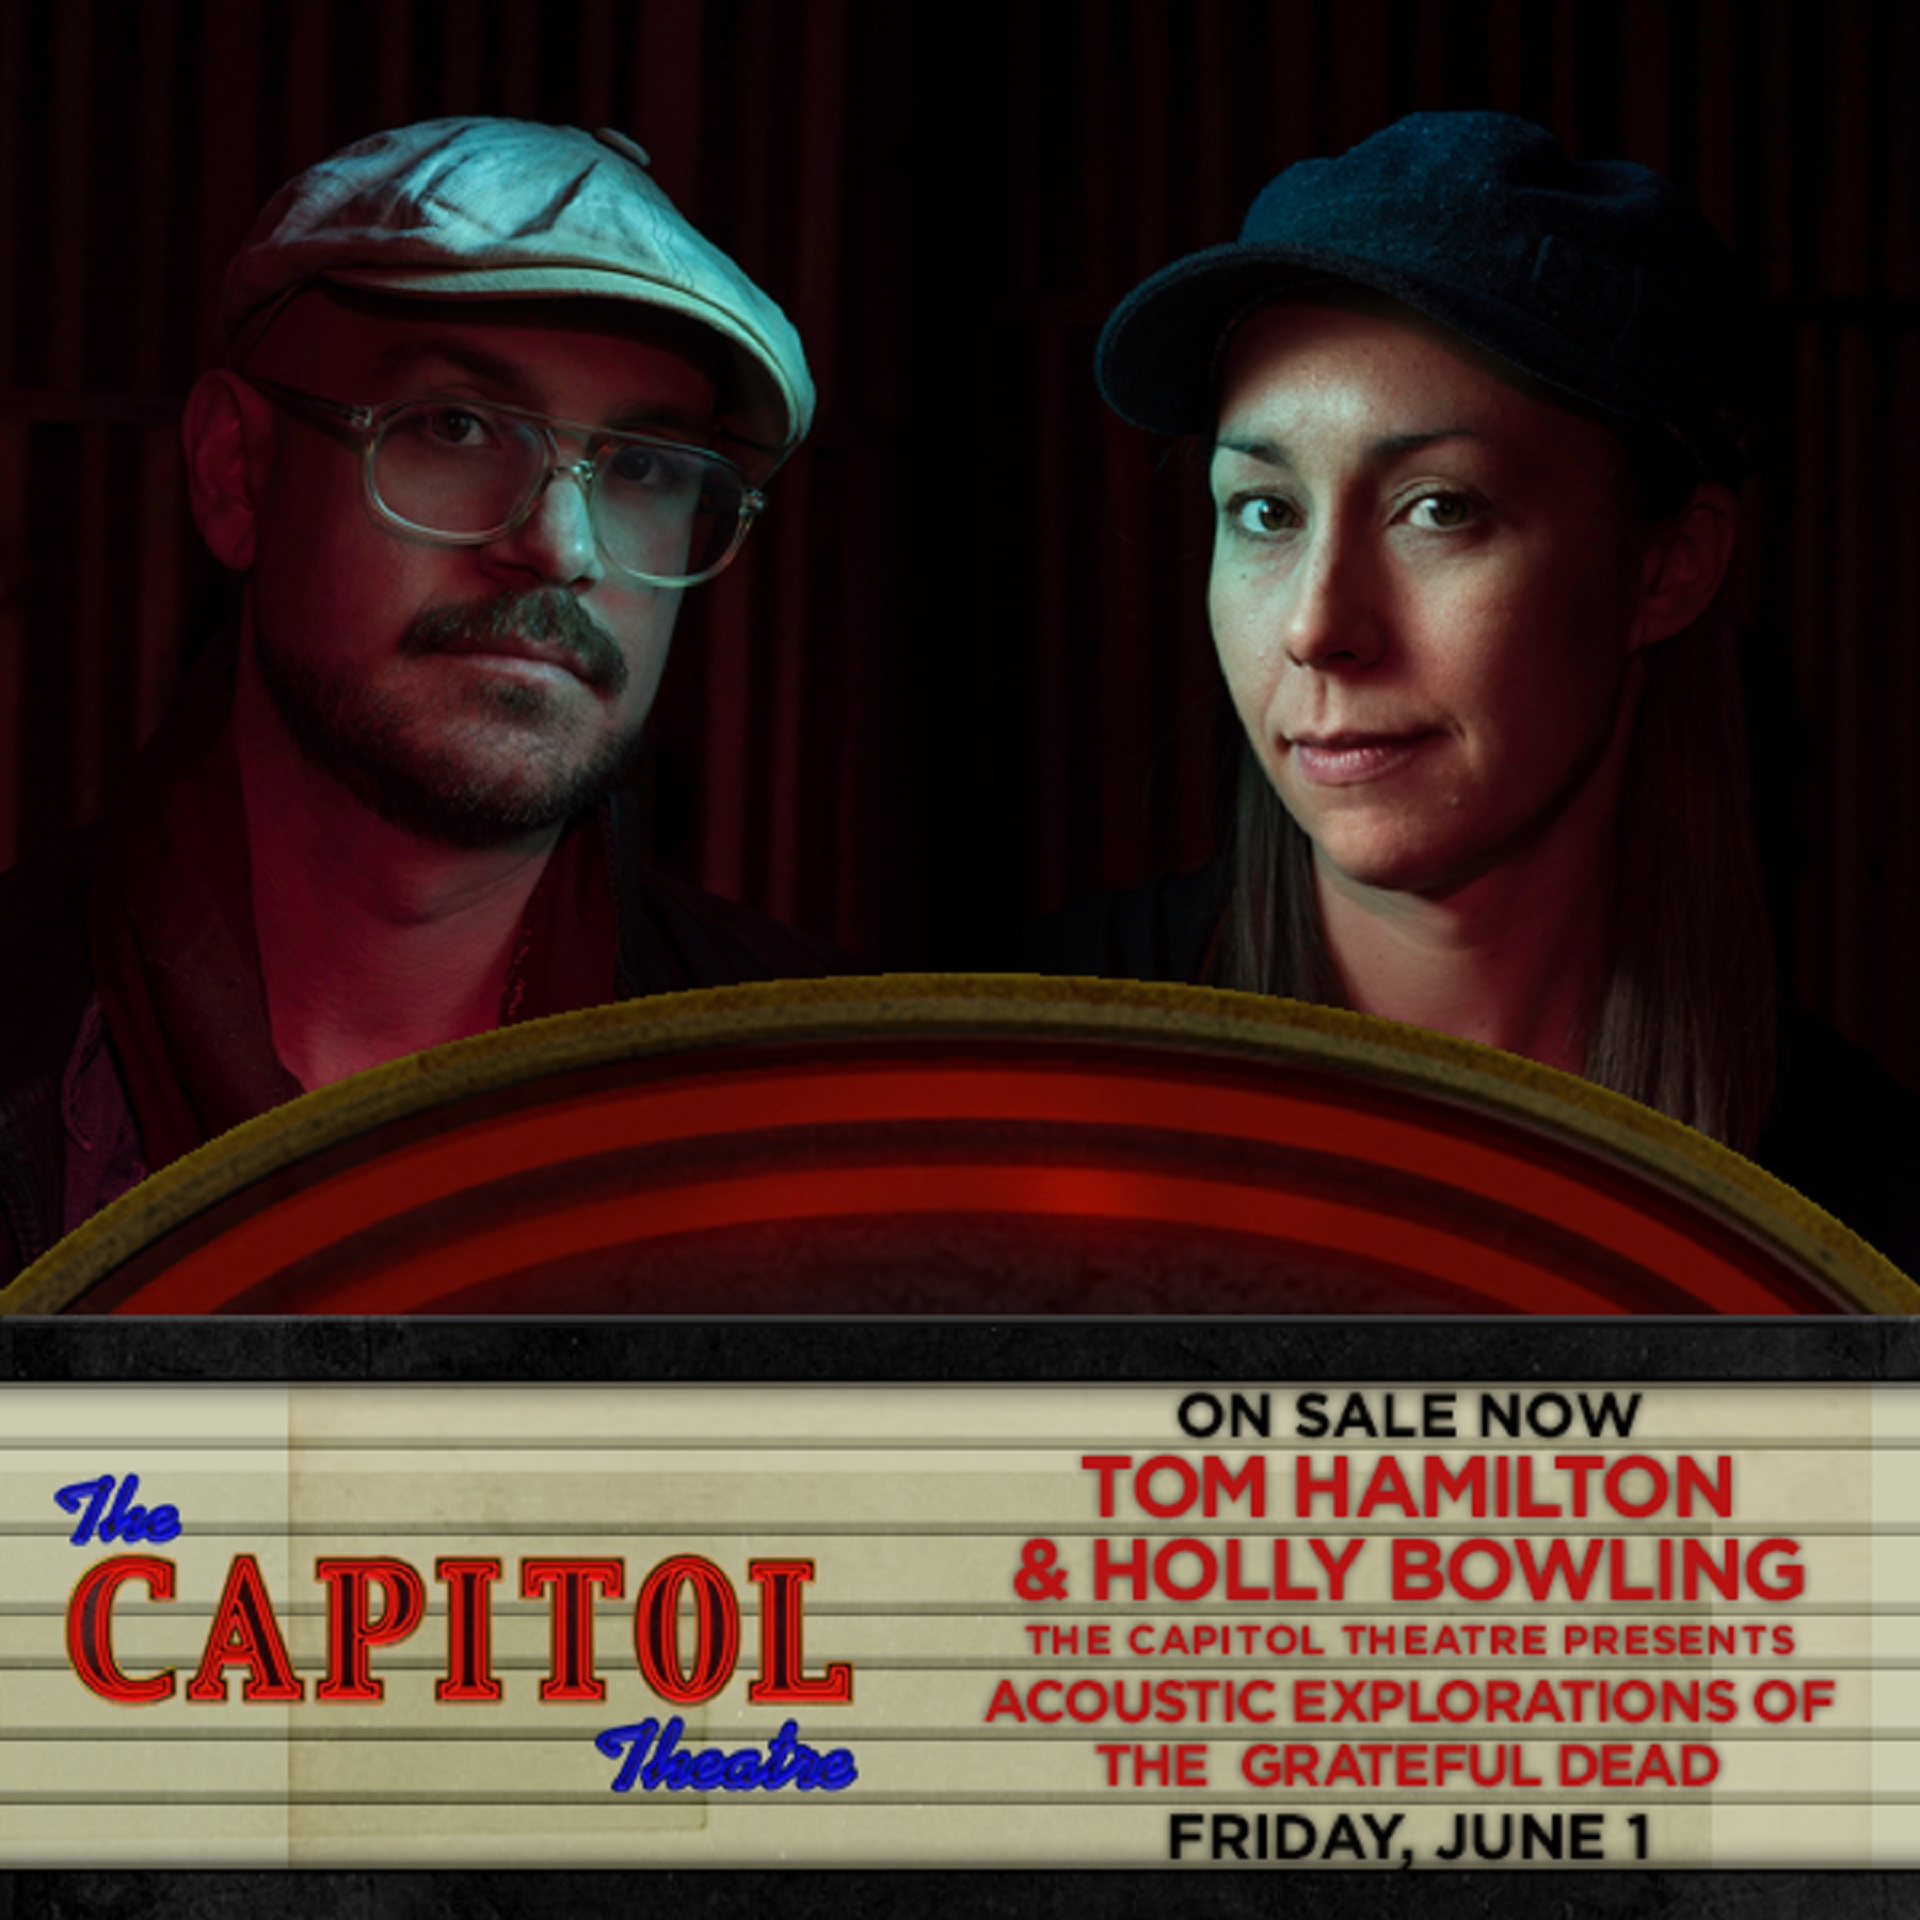 Tom Hamilton and Holly Bowling to perform Acoustic Explorations of The Grateful Dead